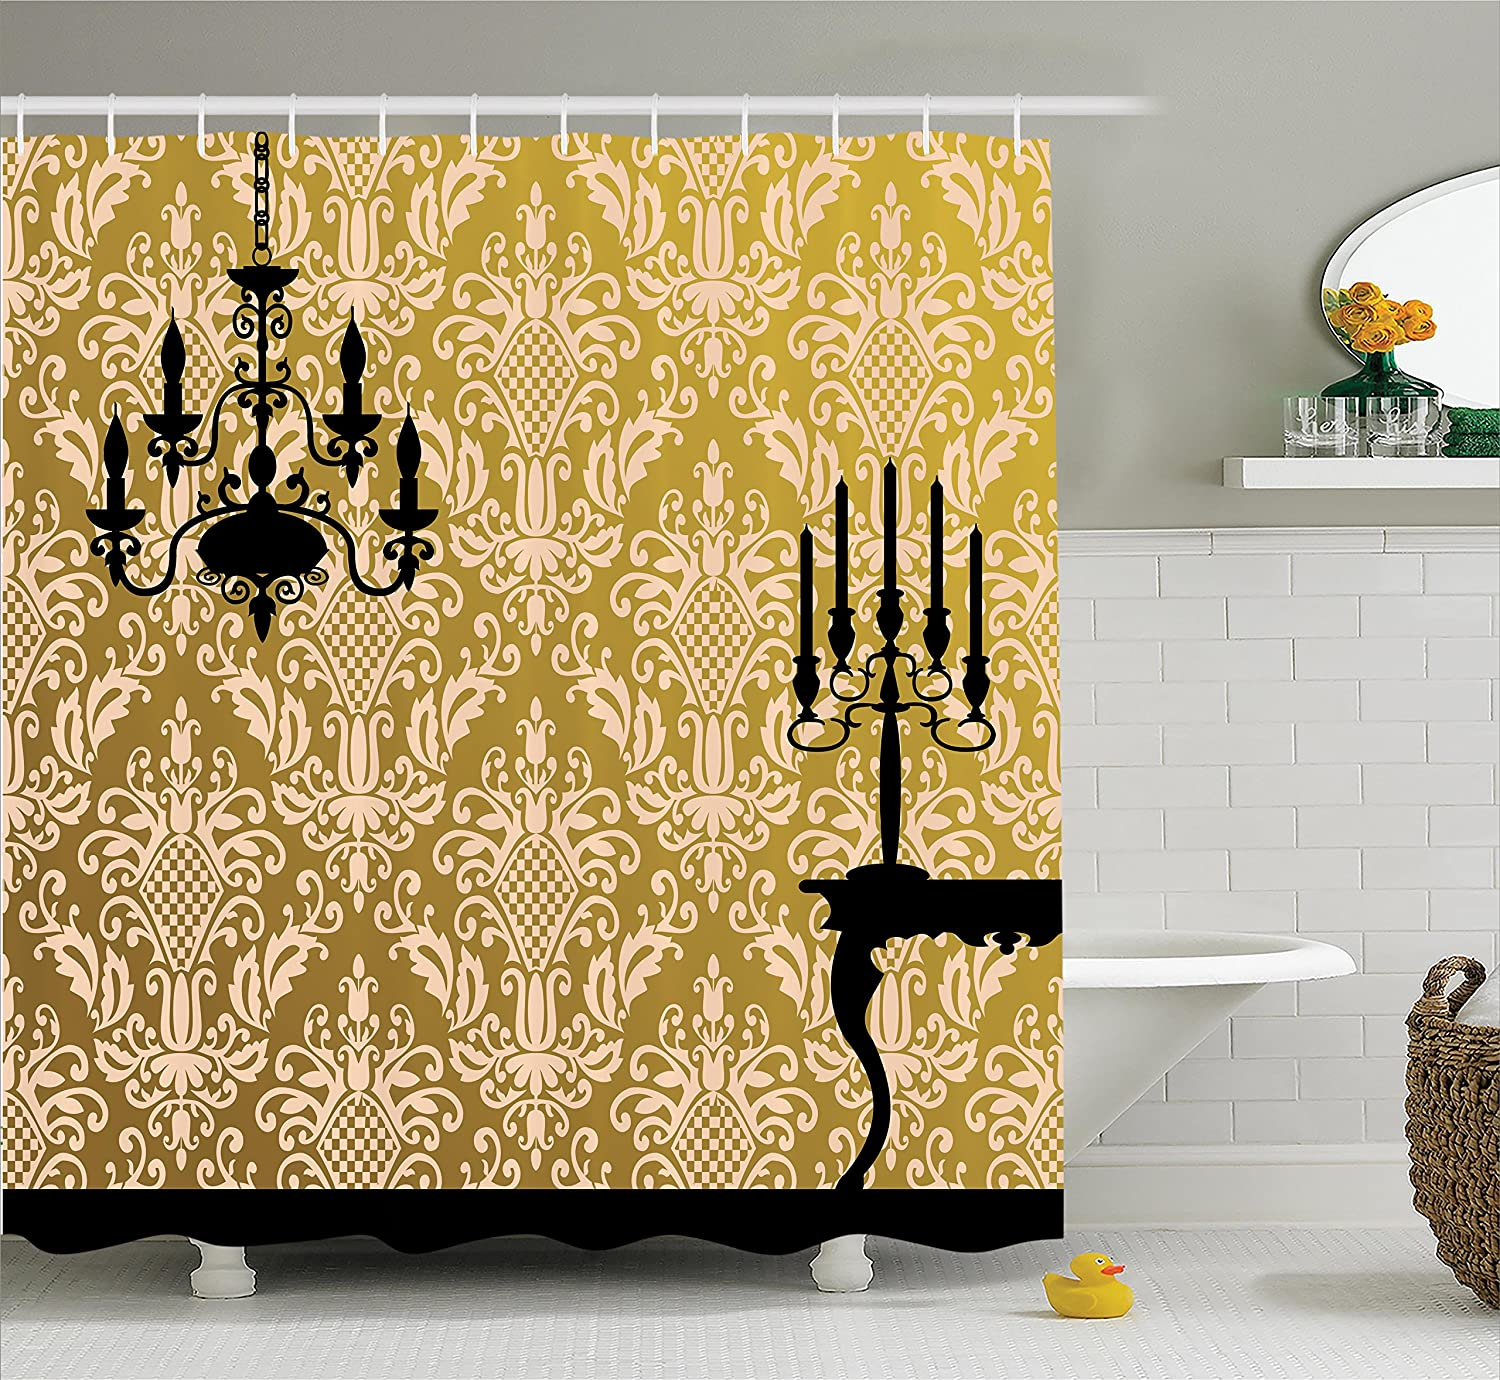 Amazon.com: Ambesonne Damask Shower Curtain, English Country House ...